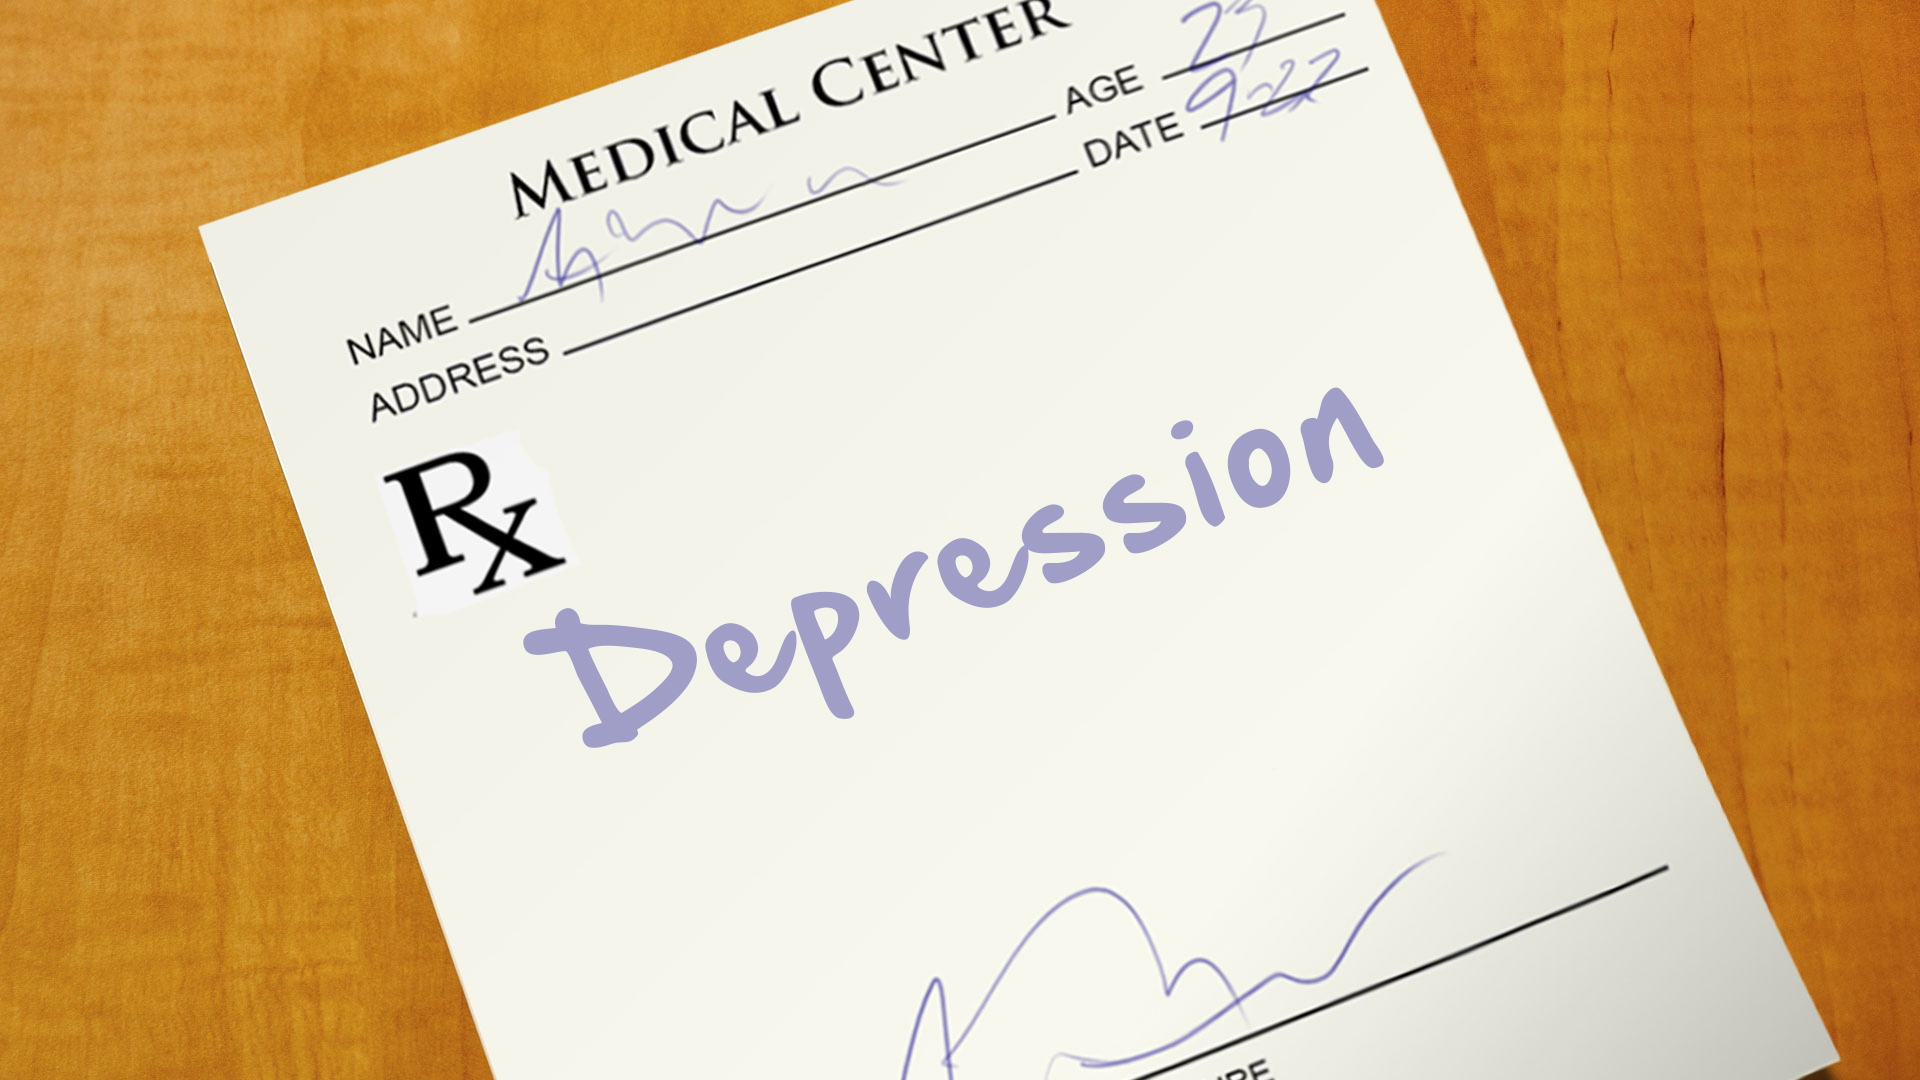 08.Depression Treatment Options - Medication